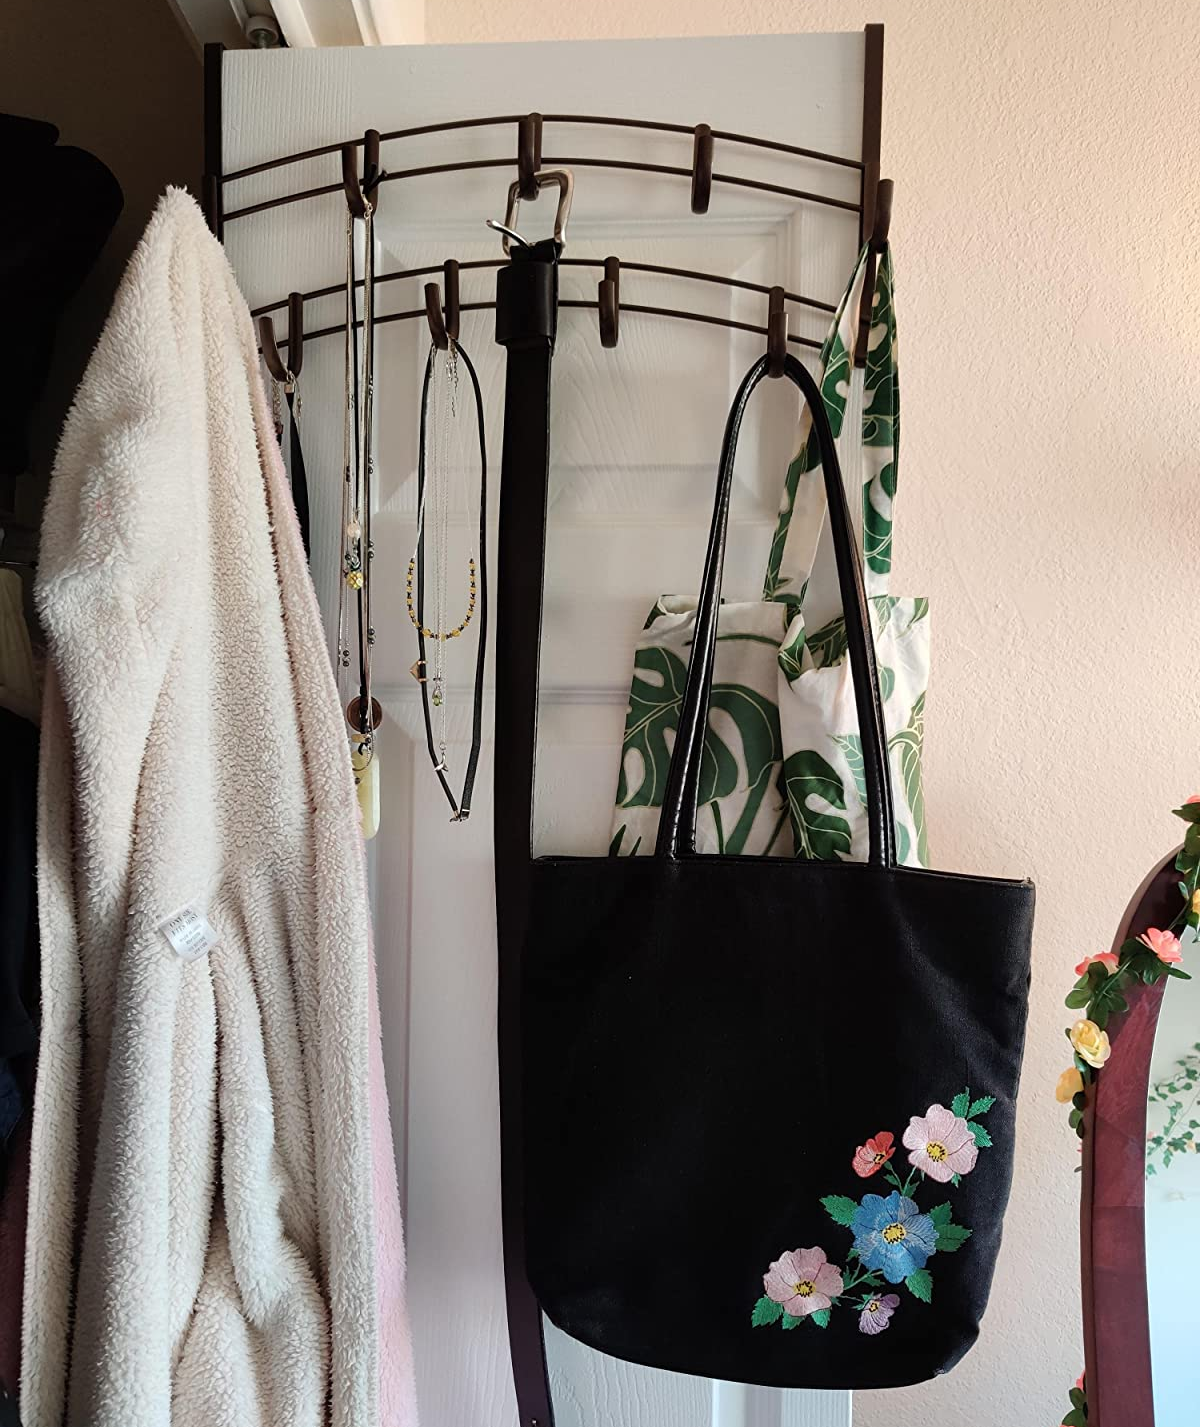 Reviewer photo of the rack over a door holding a purse, jacket, and necklaces